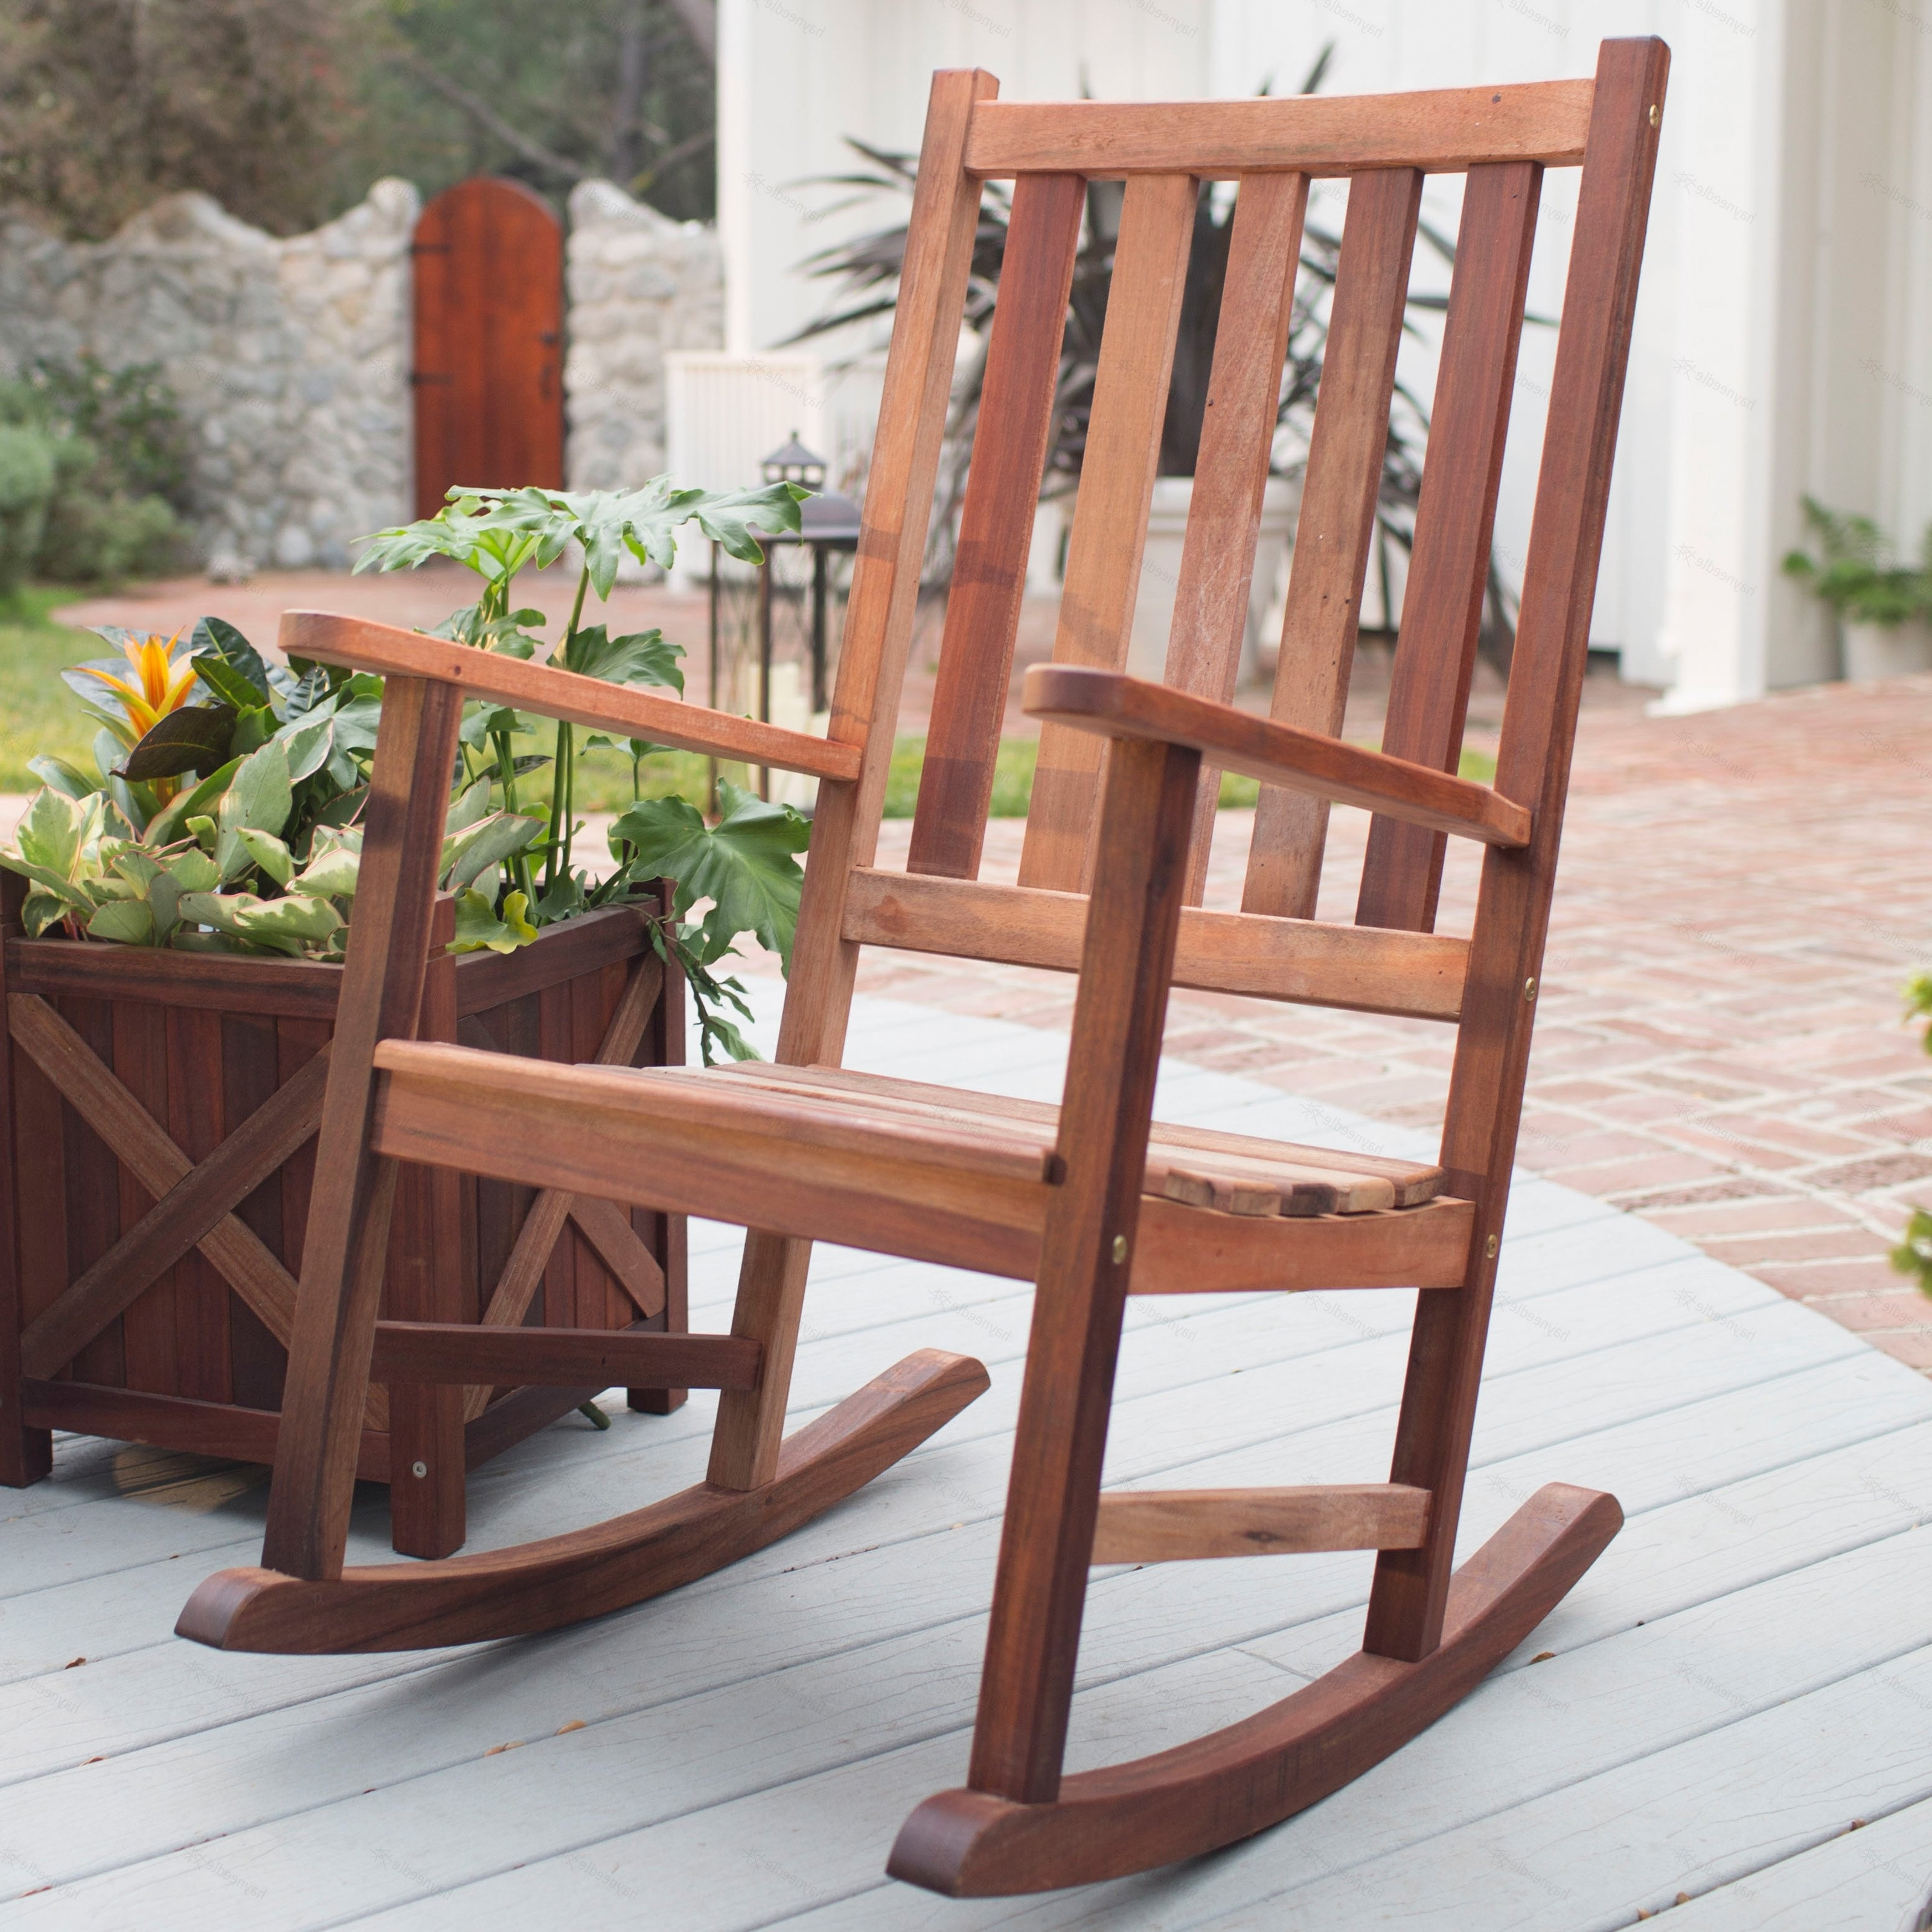 Wooden Patio Rocking Chairs With Well Known Decorating Black Outdoor Rocking Chairs Black Patio Rocking Chair (View 14 of 15)